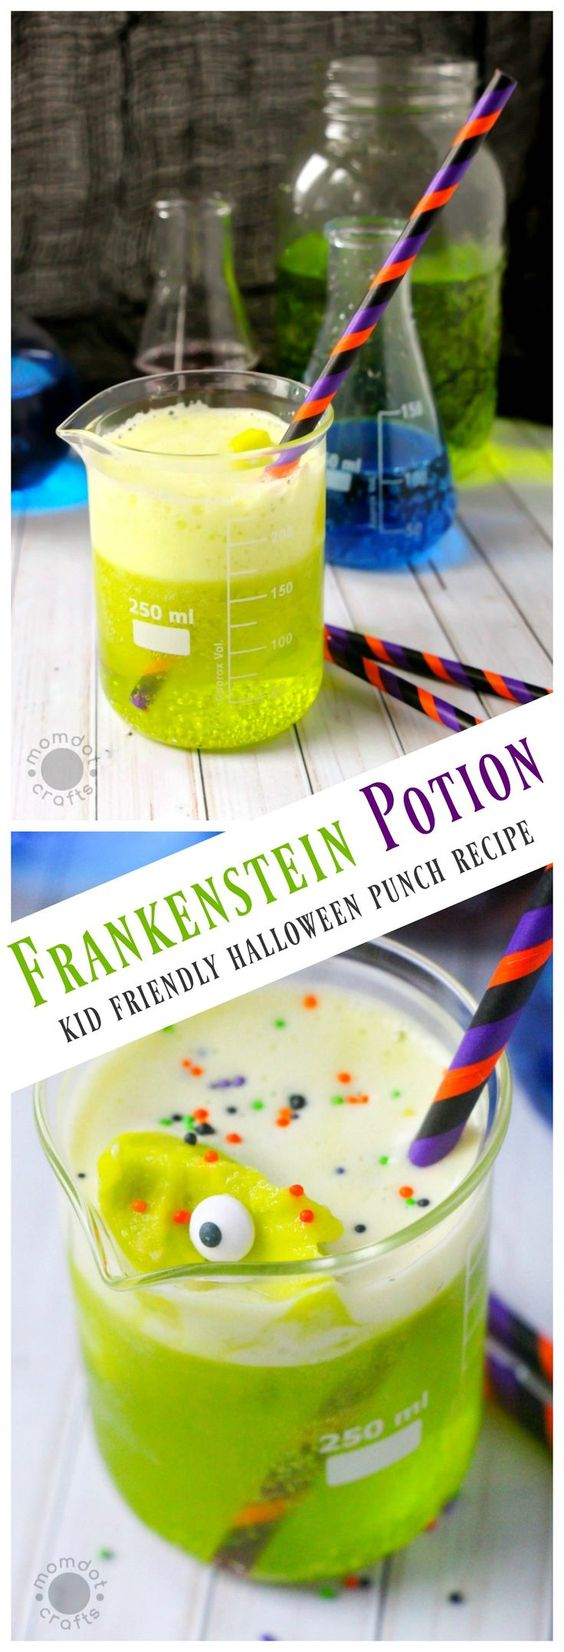 8. Frankensten Potion Kid Friendly Halloween Punch Recipe